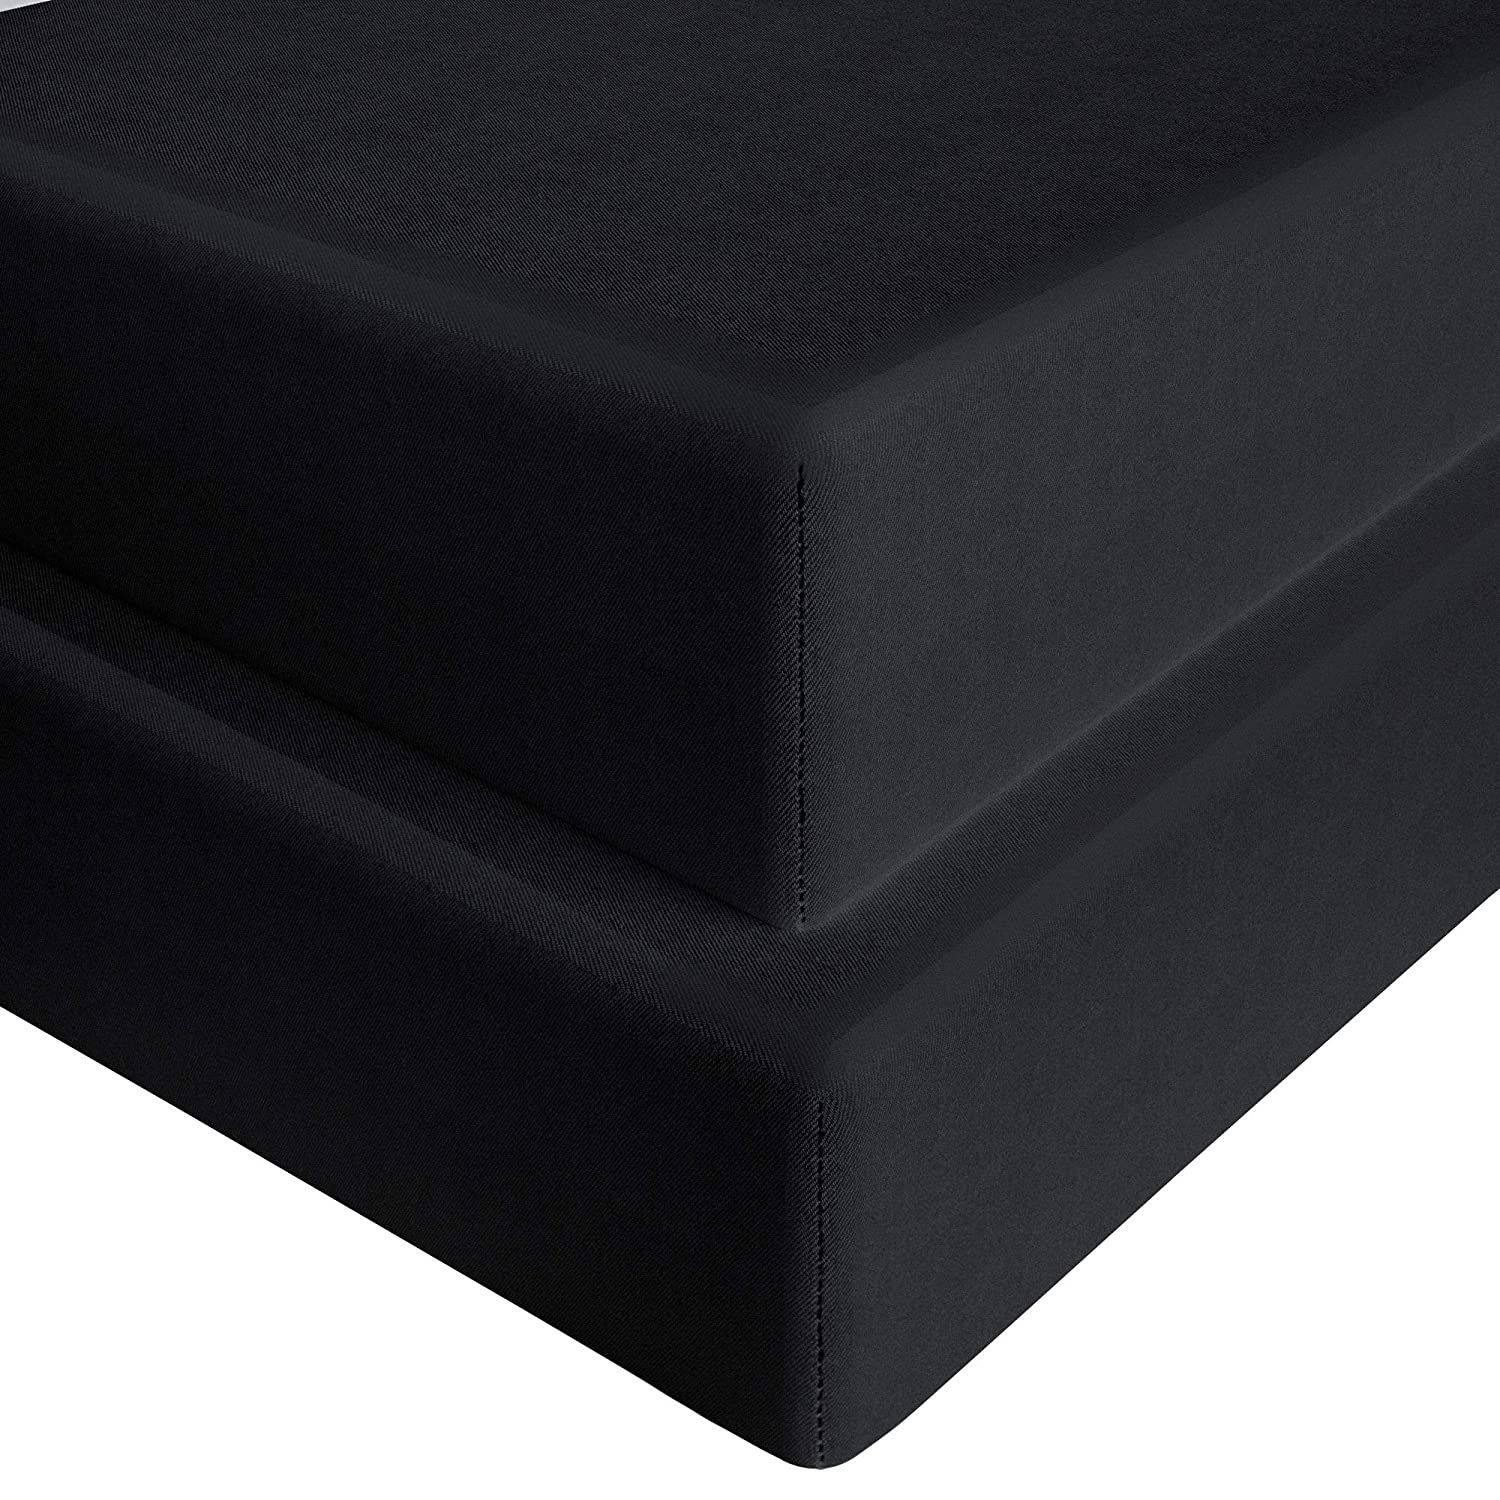 28x 52 FLXXIE Microfiber Toddler Soft Fitted Sheets 2 Pack Breathable Cozy Baby Mattress Crib Sheets for Boys and Girls Black